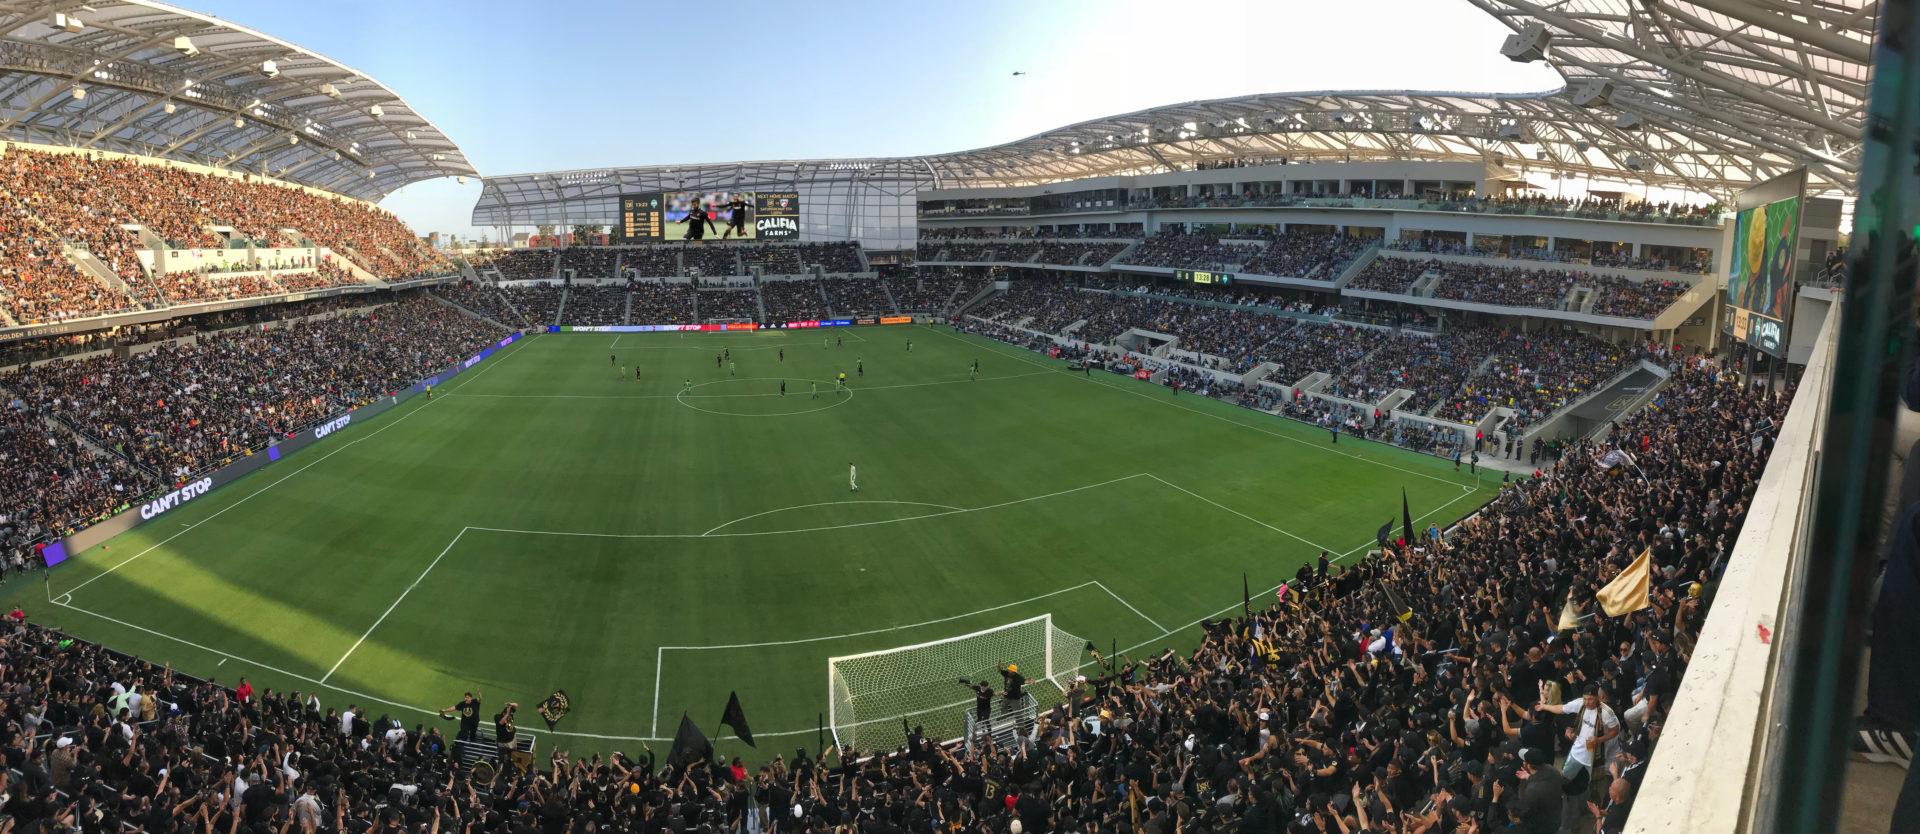 AJP, Anthony James Partners, AV Consulting, Control Room, Video Replay, Broadcast Cabling, IPTV, CATV, Distributed TV, Basketball, Center Hung, LAFC, Professional Soccer, High Definition, LED Scoreboard, LED Video, LED Videoboard